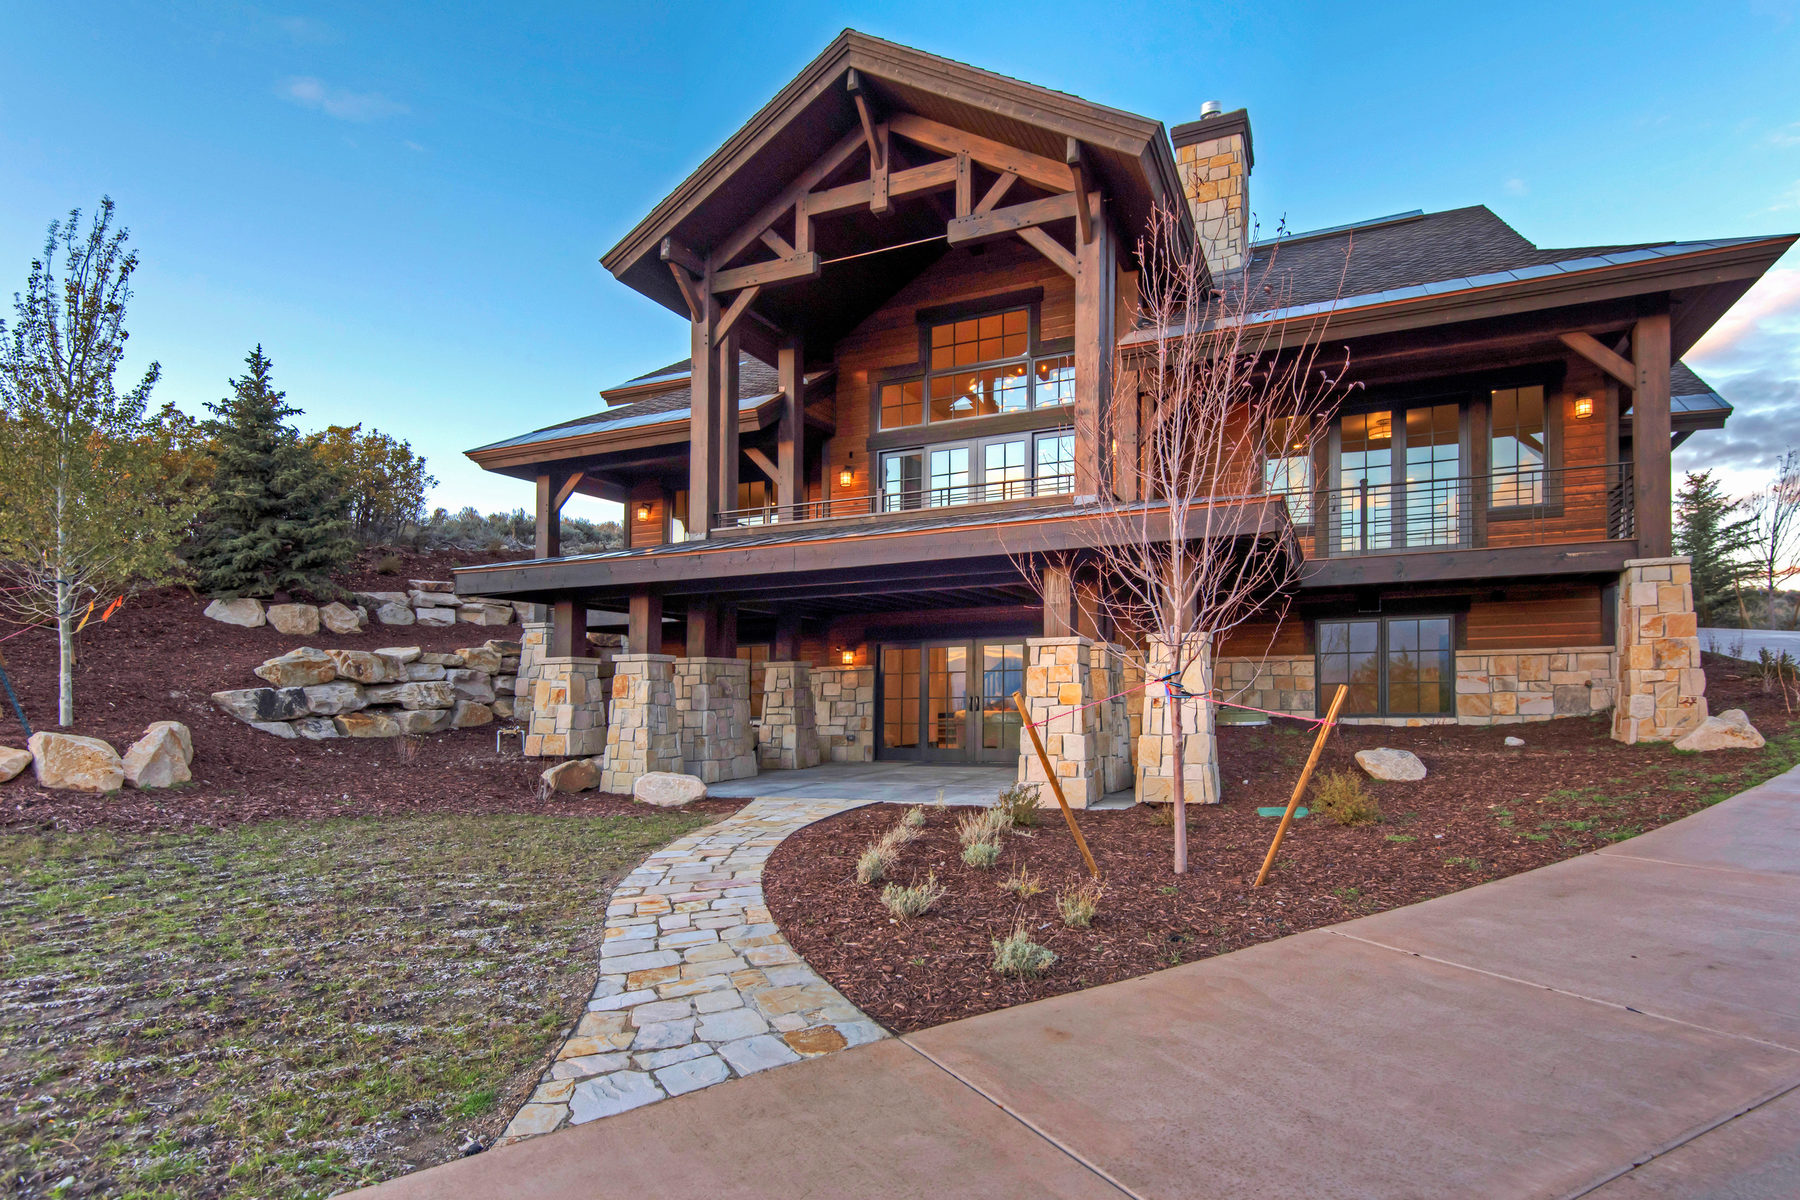 Single Family Home for Sale at Gorgeous South Facing Home in Promontory 8936 N Mountain Crest Rd Park City, Utah, 84098 United States